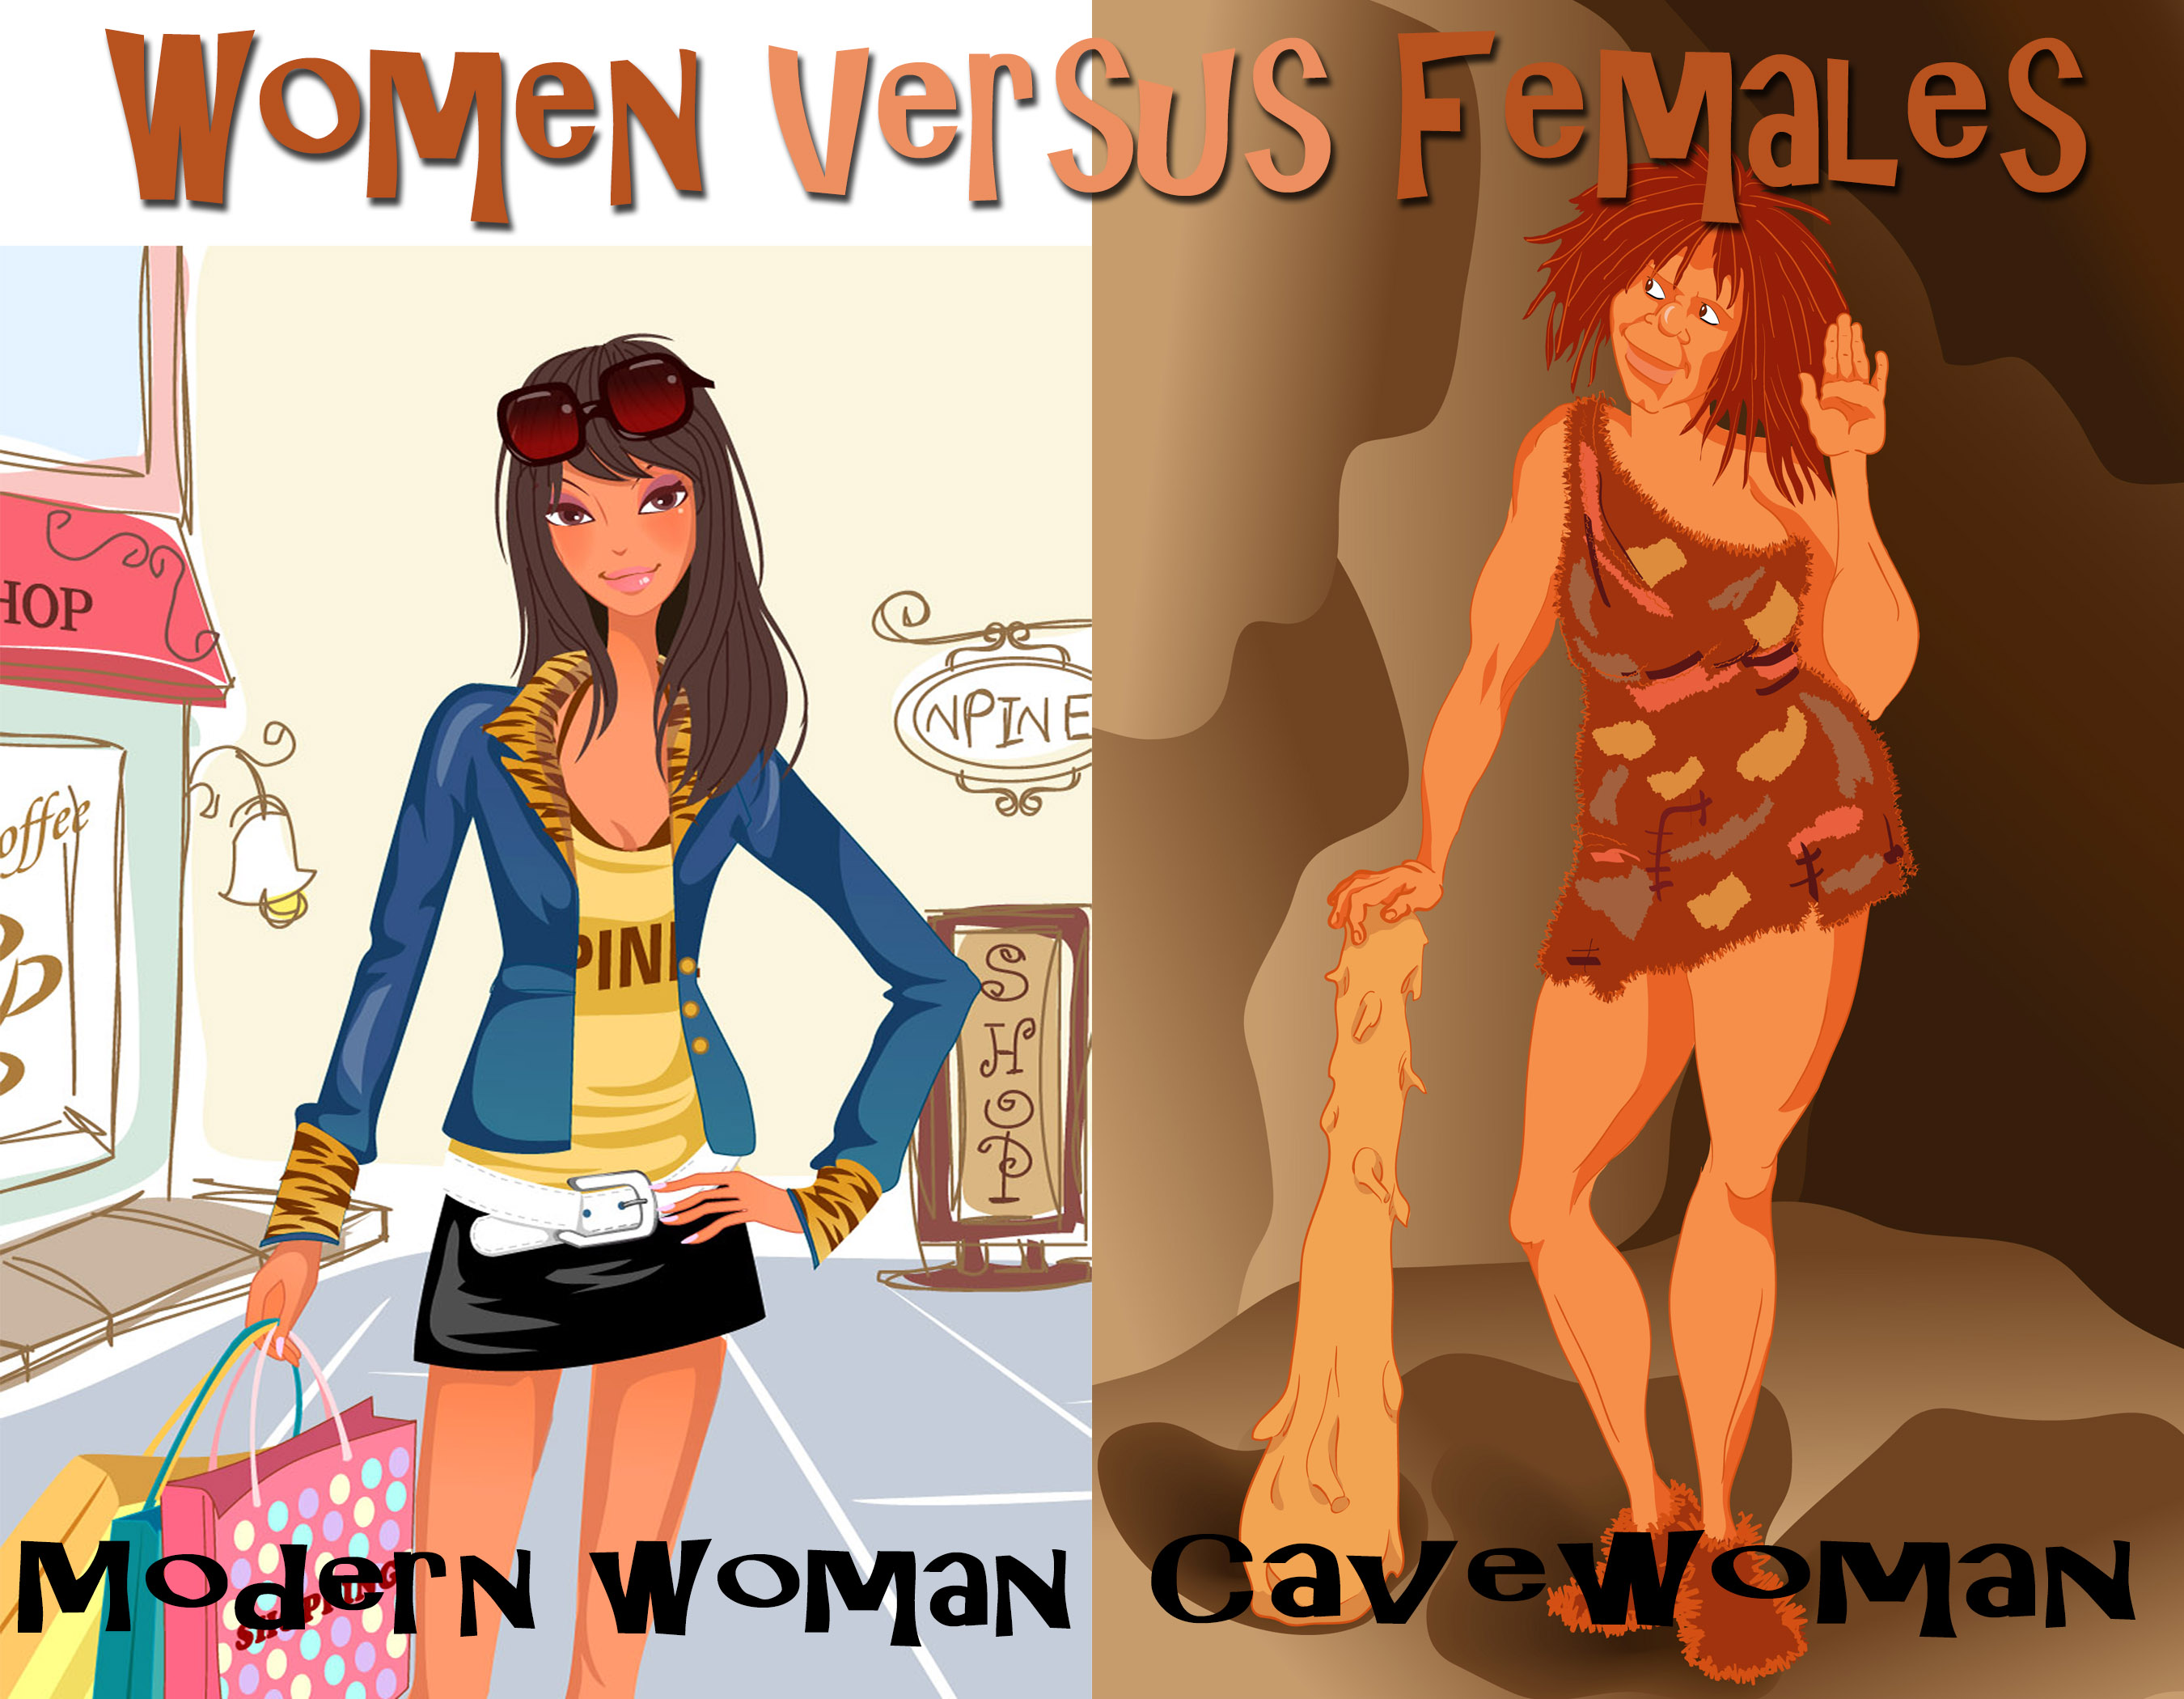 Women versus females